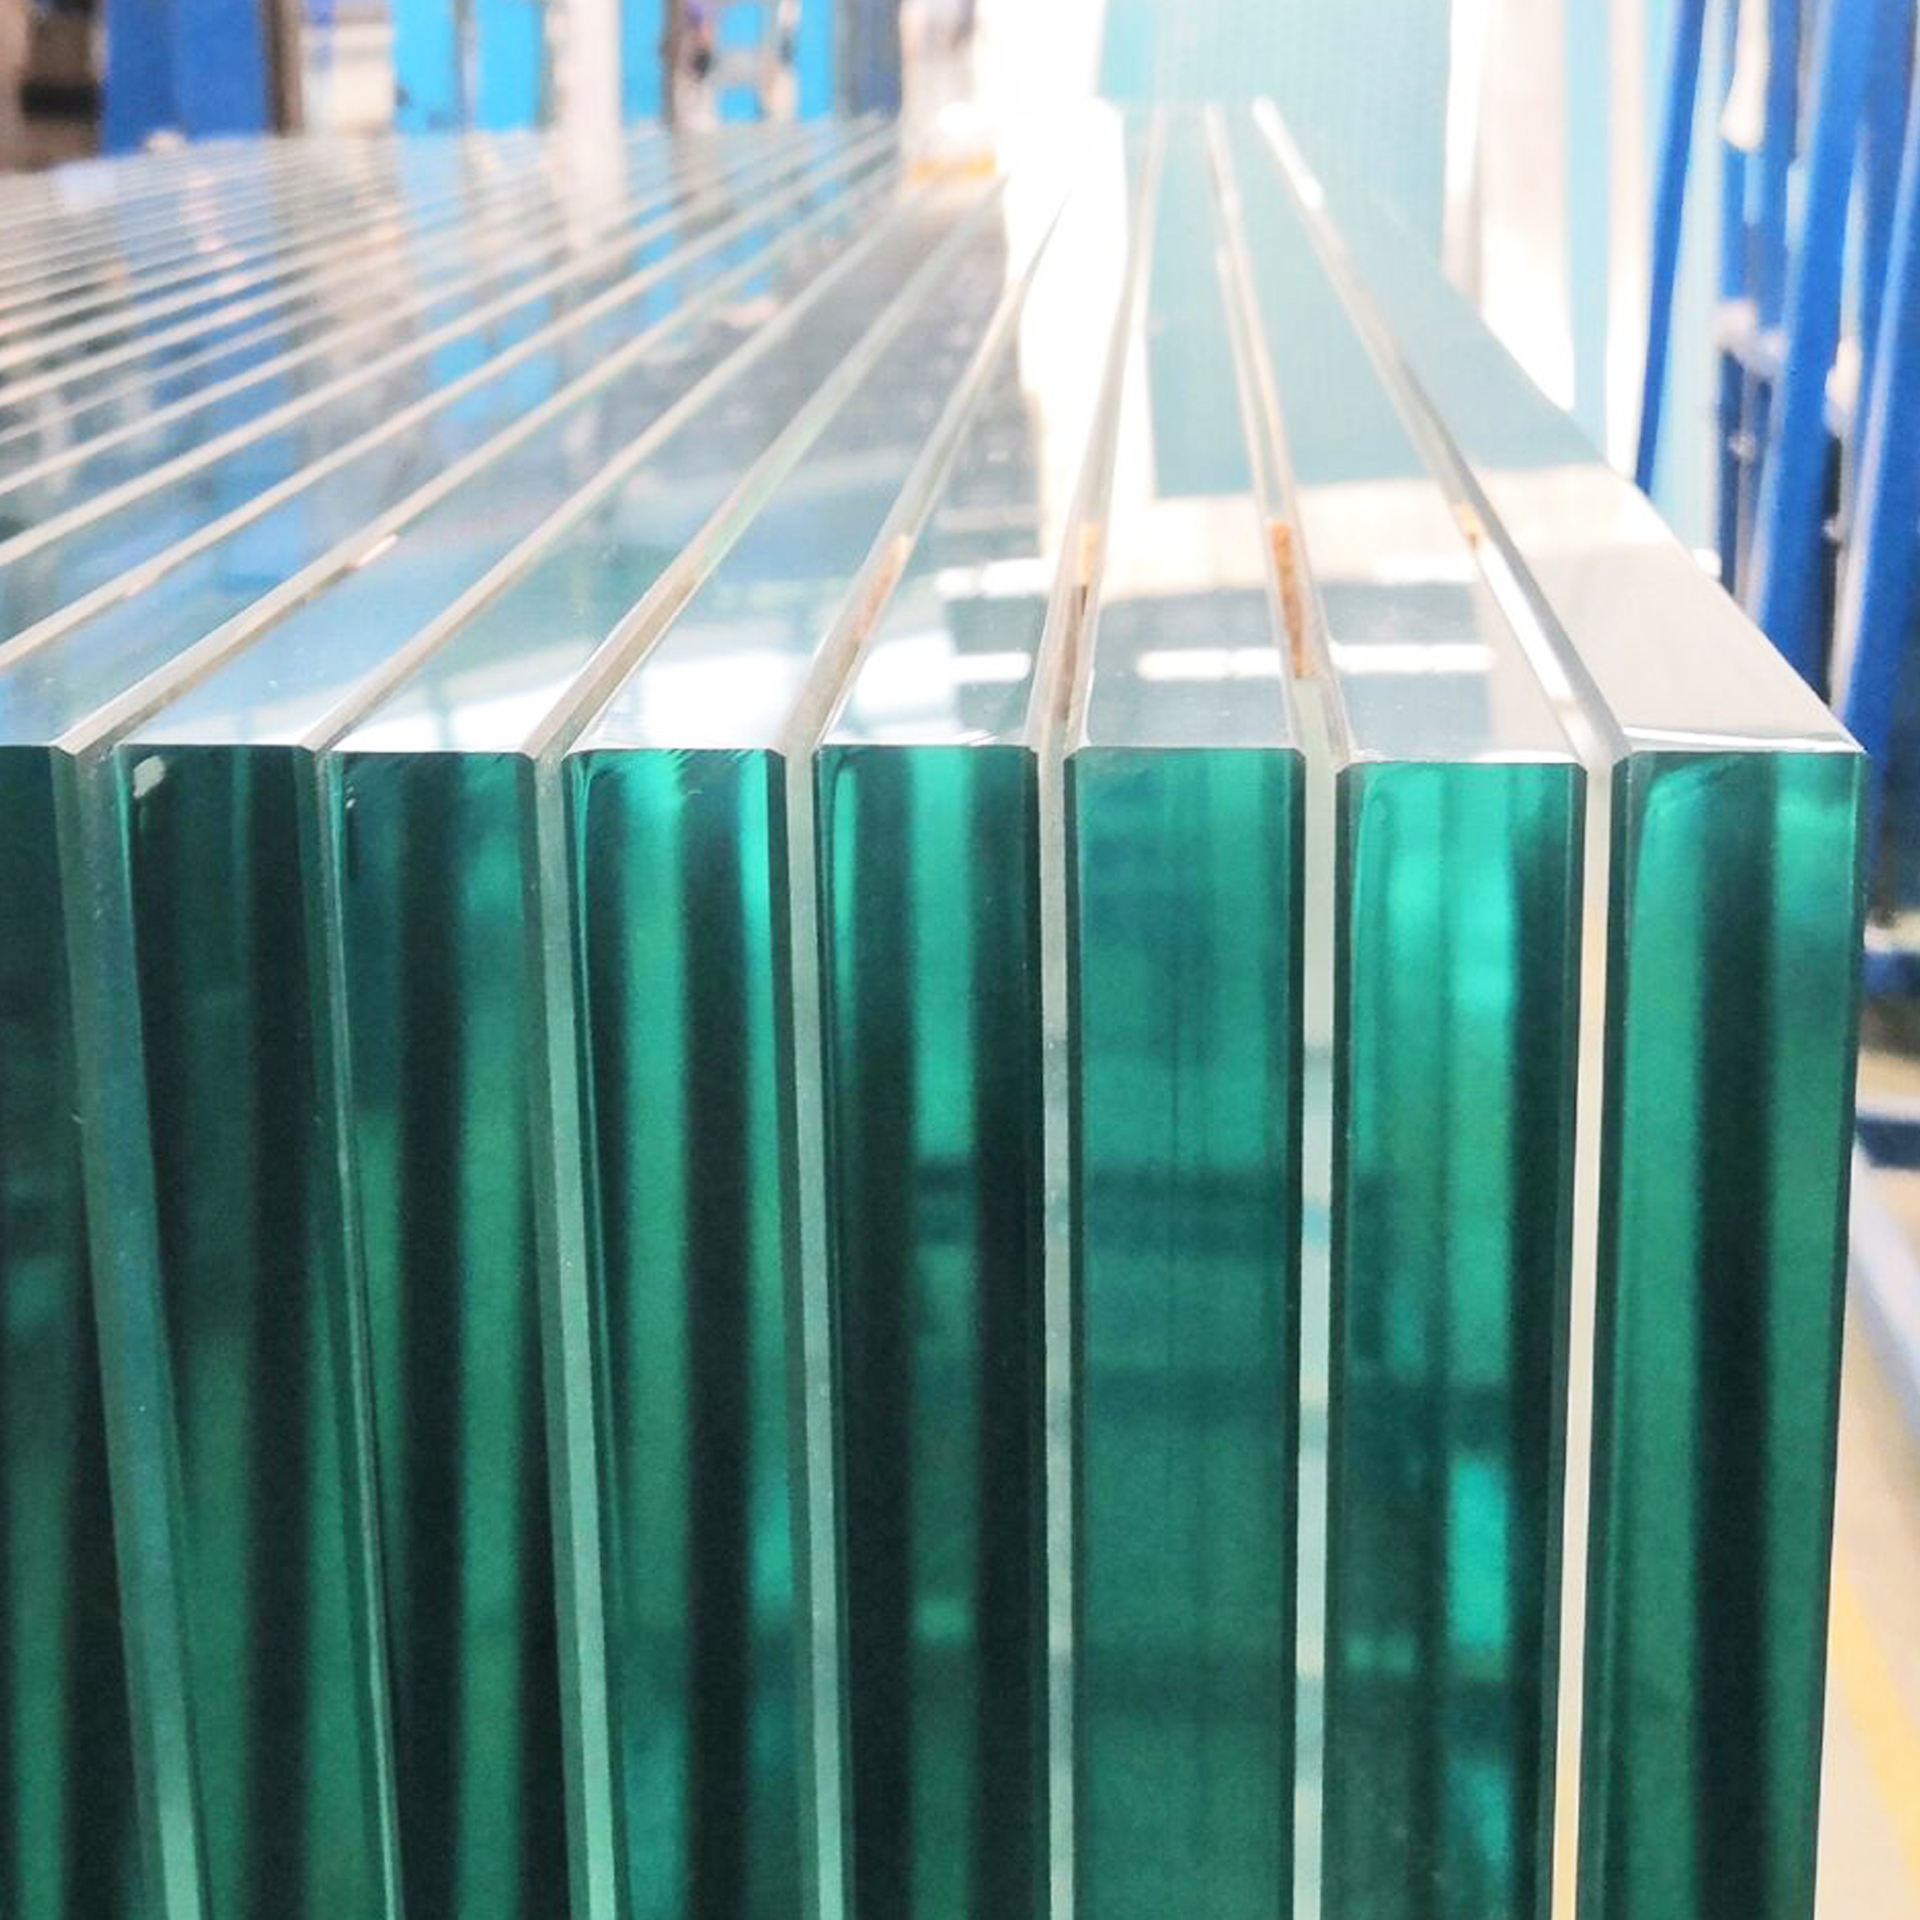 4mm 5mm 6mm 8m 10mm 12mm 15mm 19mm custom clear fully tempered toughened thermal glass window sliding door wall panels price